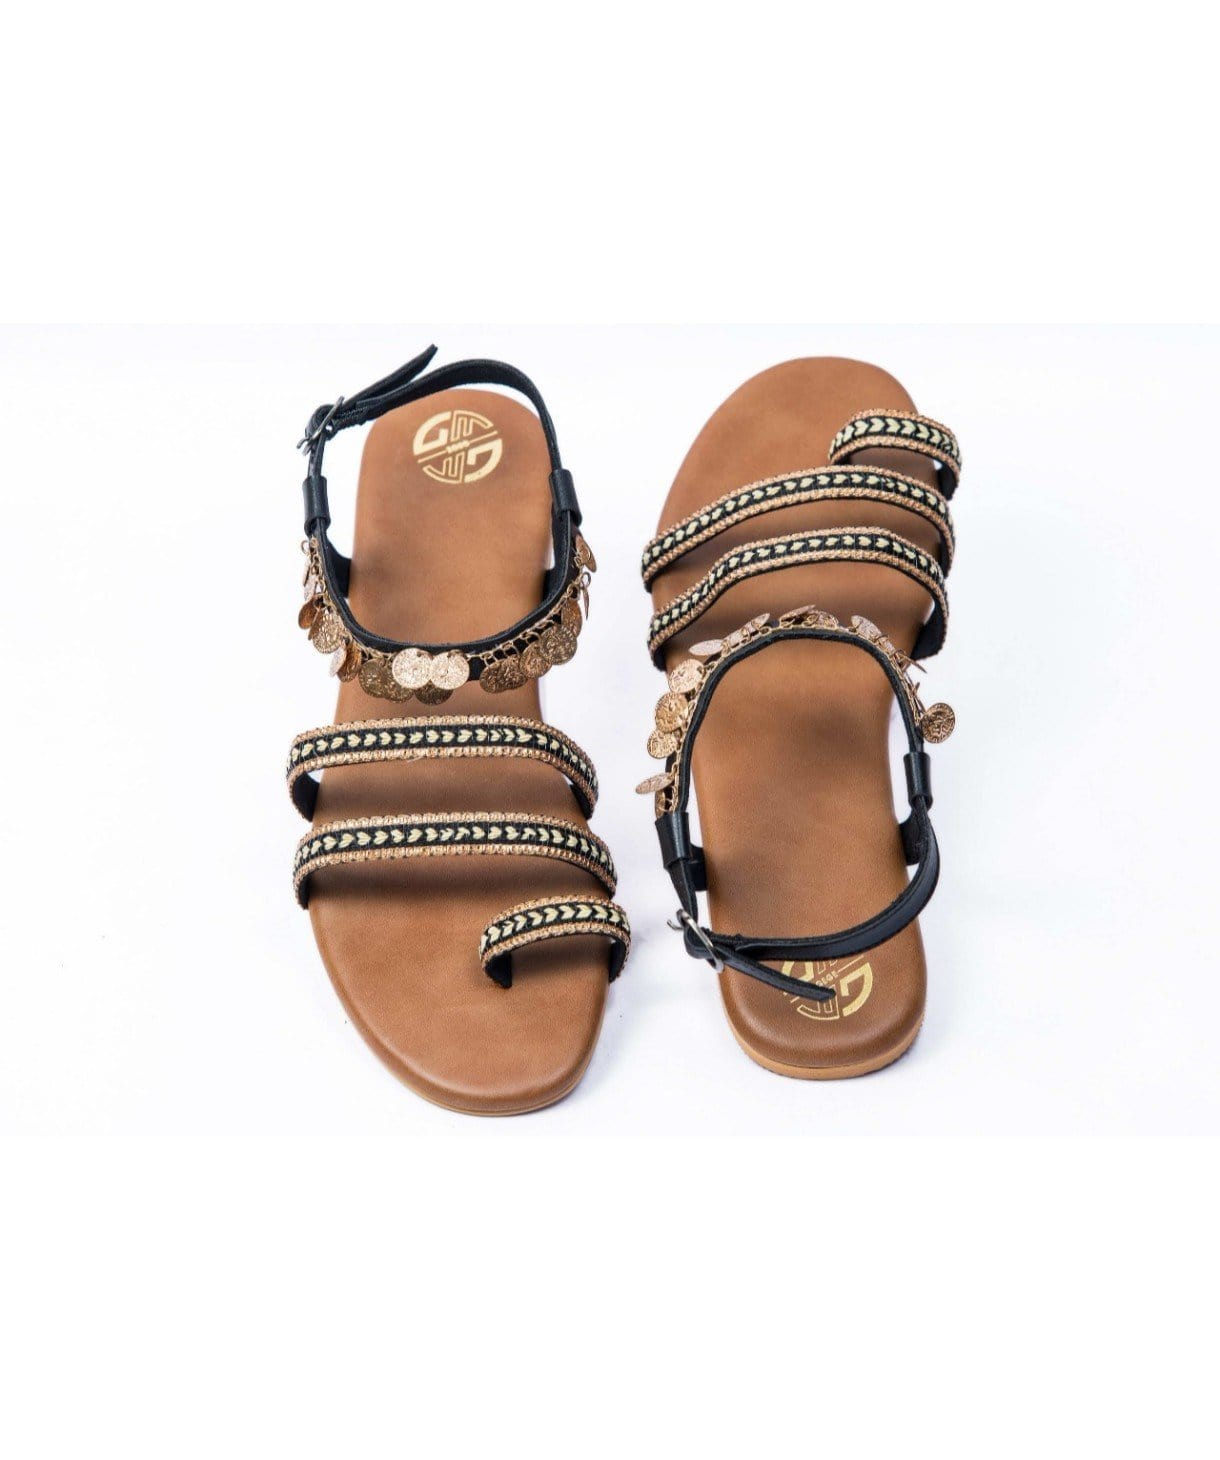 Boho Black Sandals - Uptownie